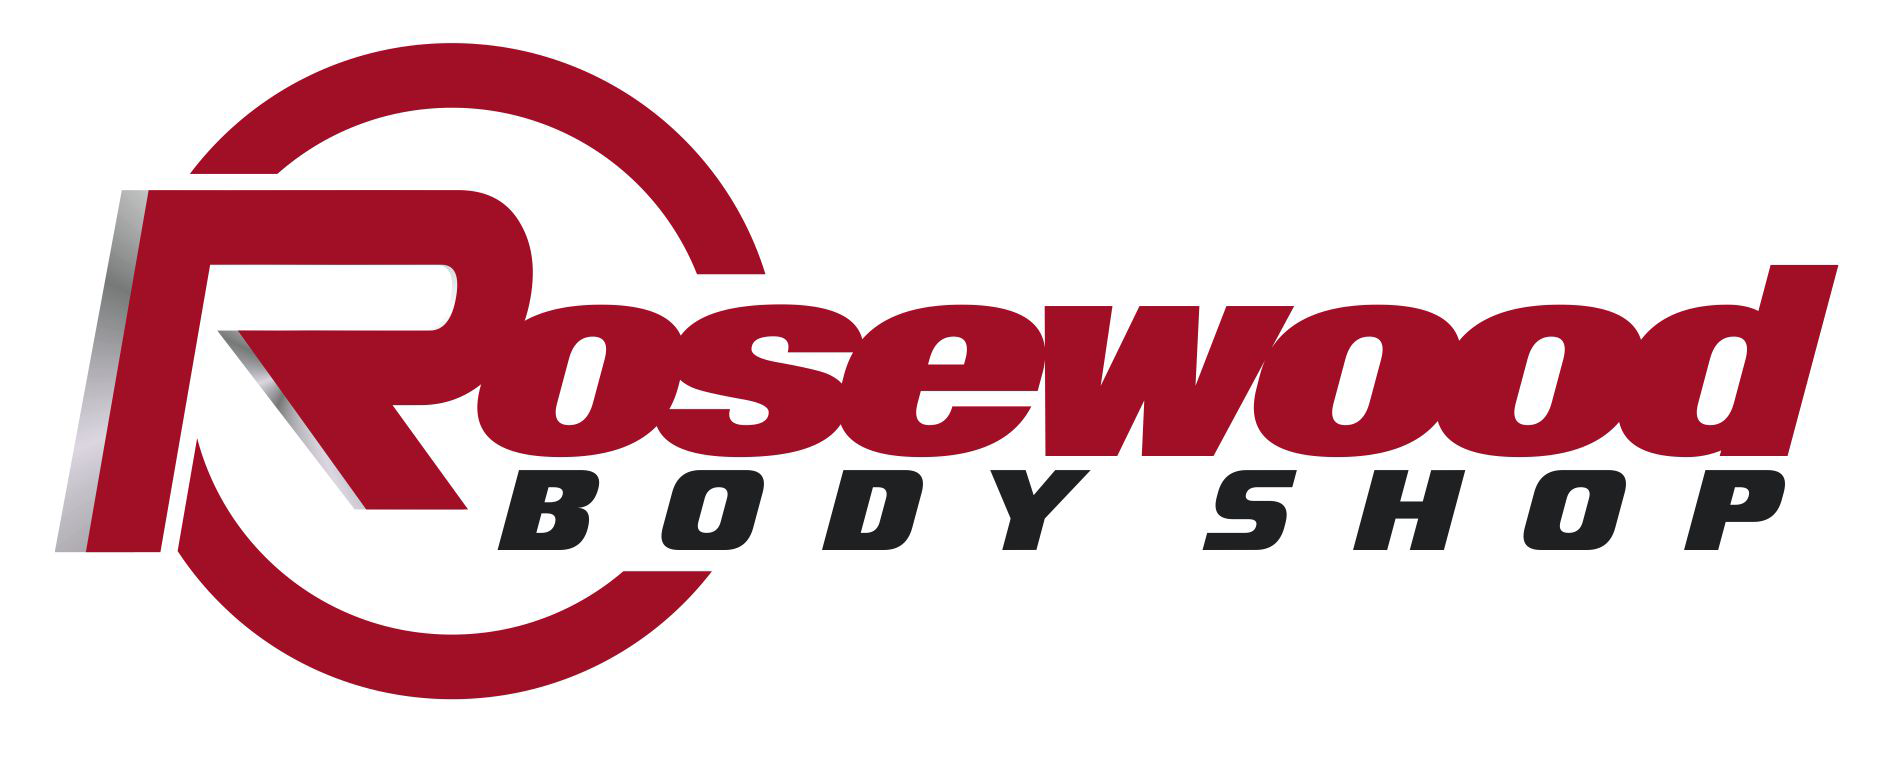 Rosewood Body Shop, Inc.